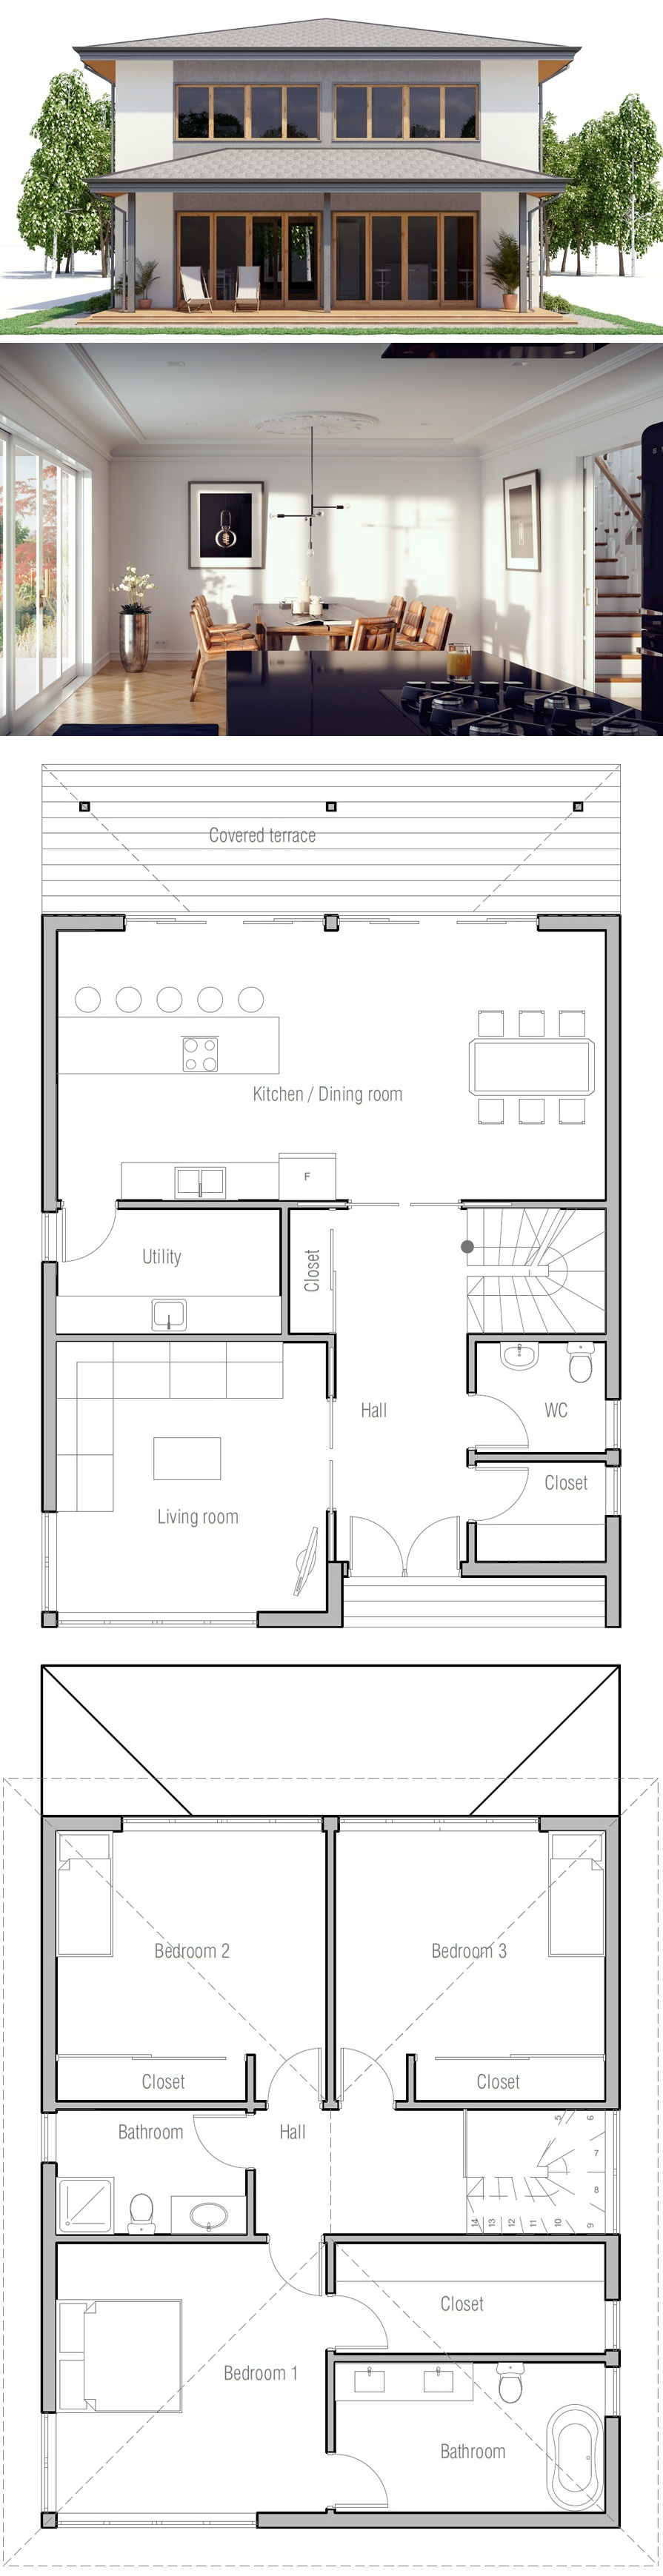 small house plan exterior homes and architecture in 2018 rh pinterest com